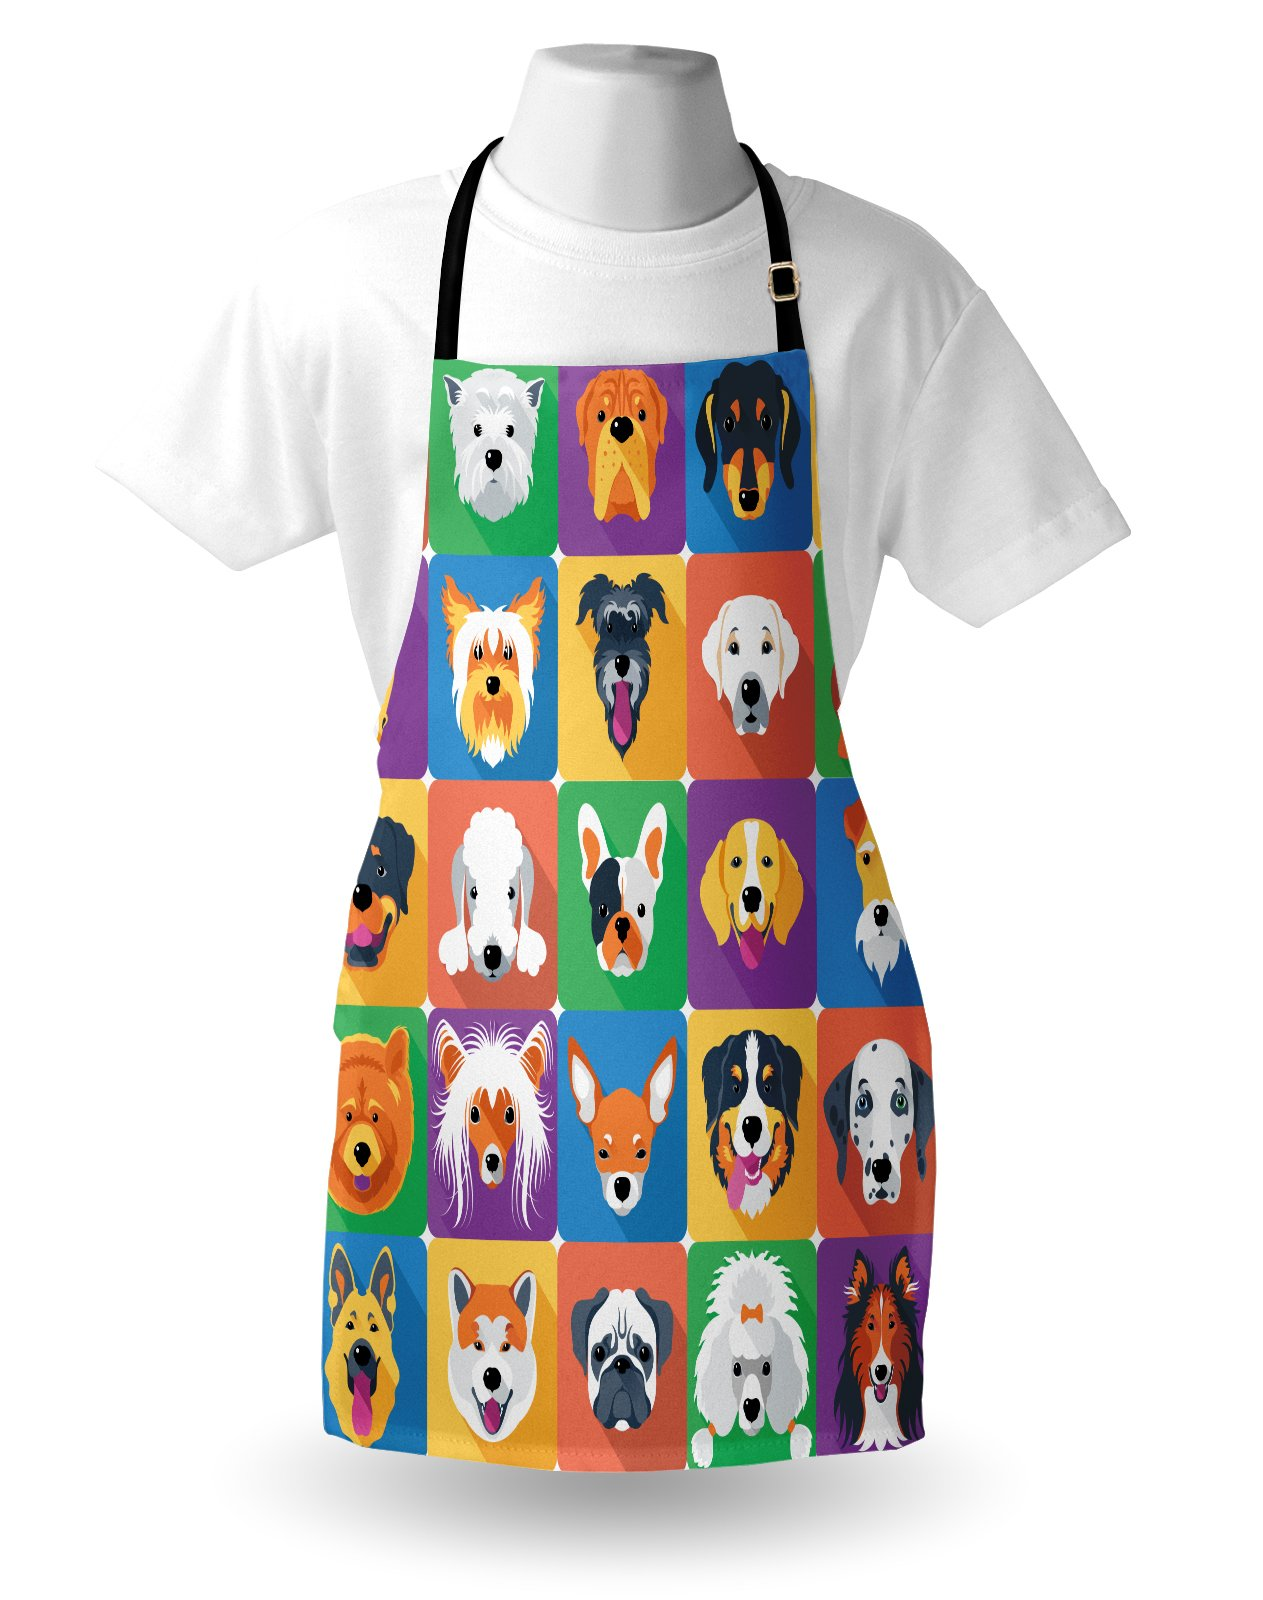 Ambesonne Dog Apron, Dog Breeds Profiles Pets Shepherd Terrier Labrador Domestic Animals Illustration, Unisex Kitchen Bib Apron with Adjustable Neck for Cooking Baking Gardening, Purple Green by Ambesonne (Image #3)